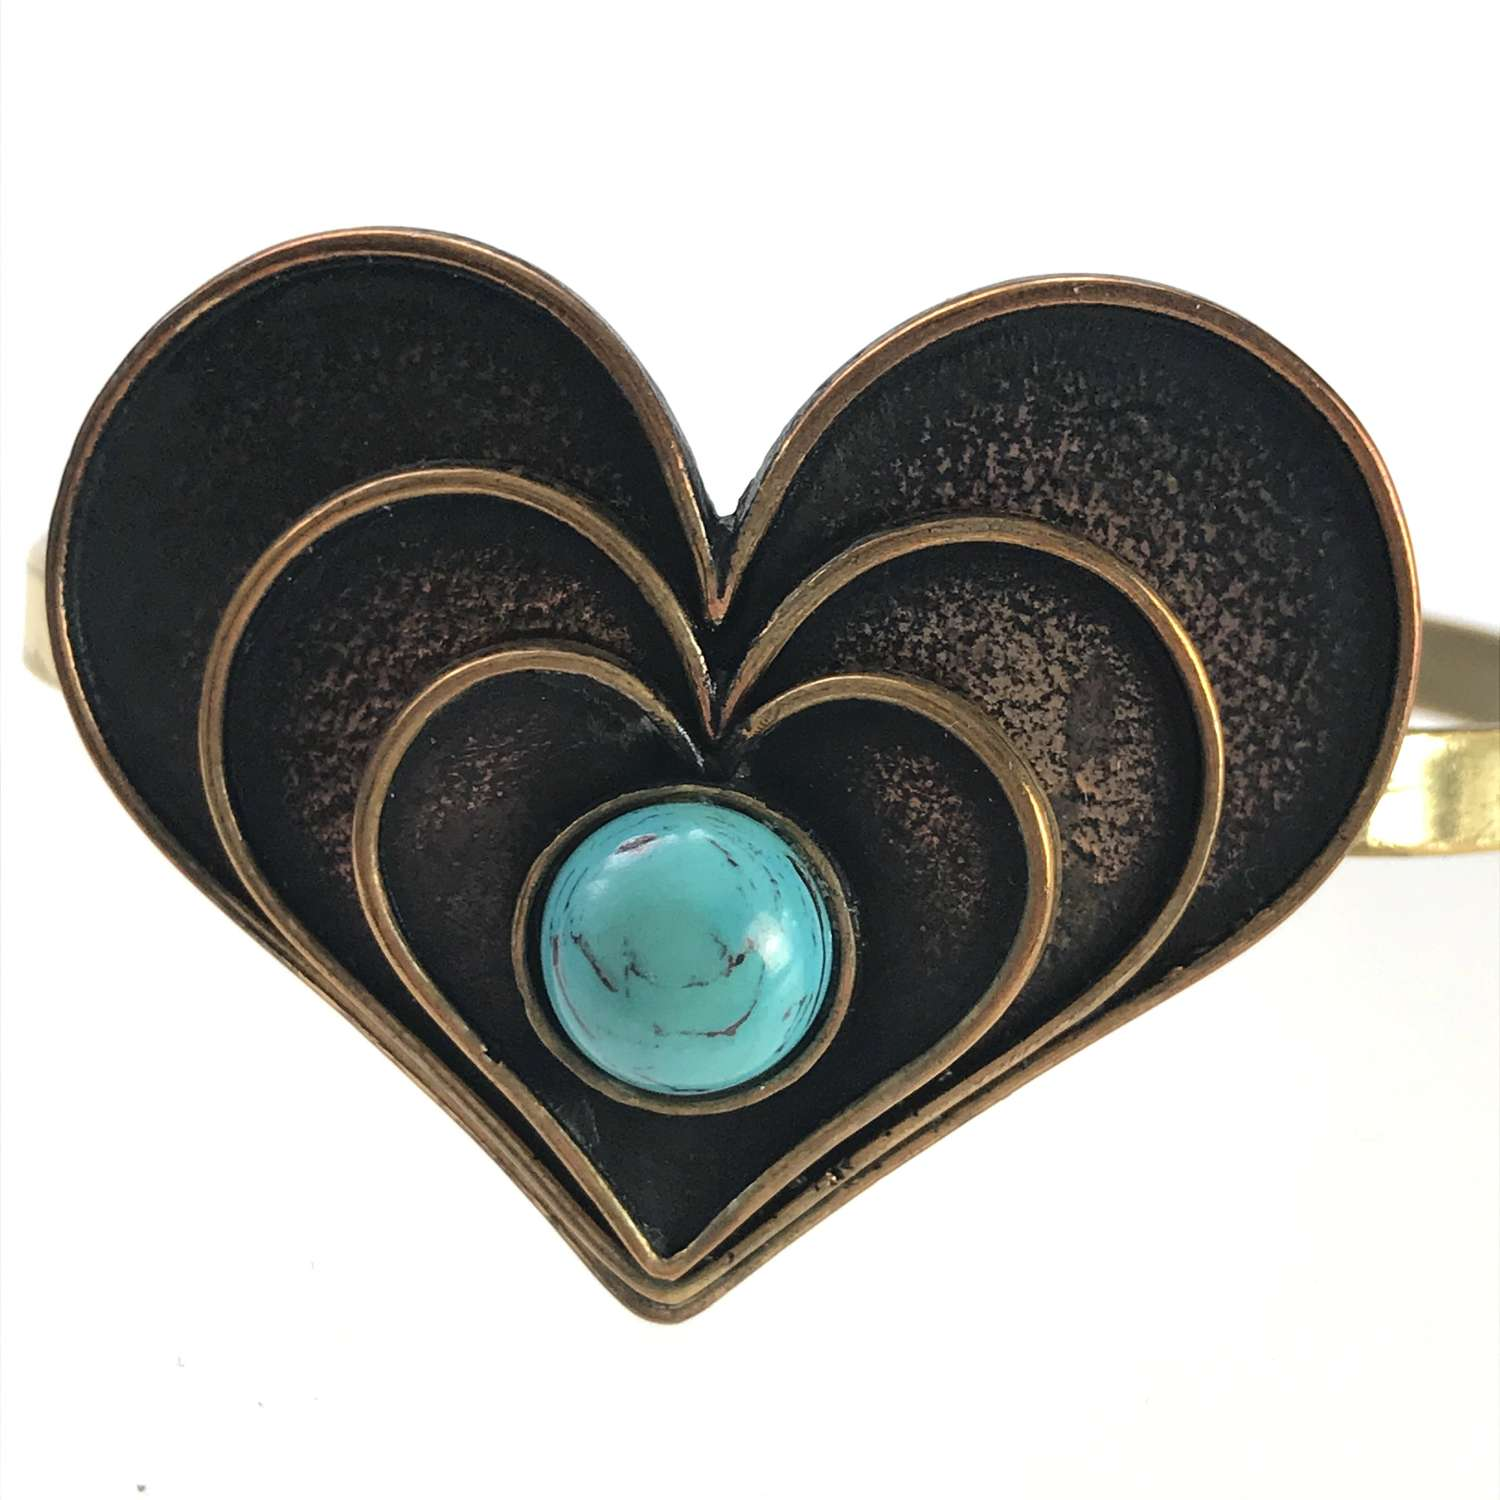 Bronze bangle with turquoise cabochon, Pentti Sarpaneva, Finland 1970s